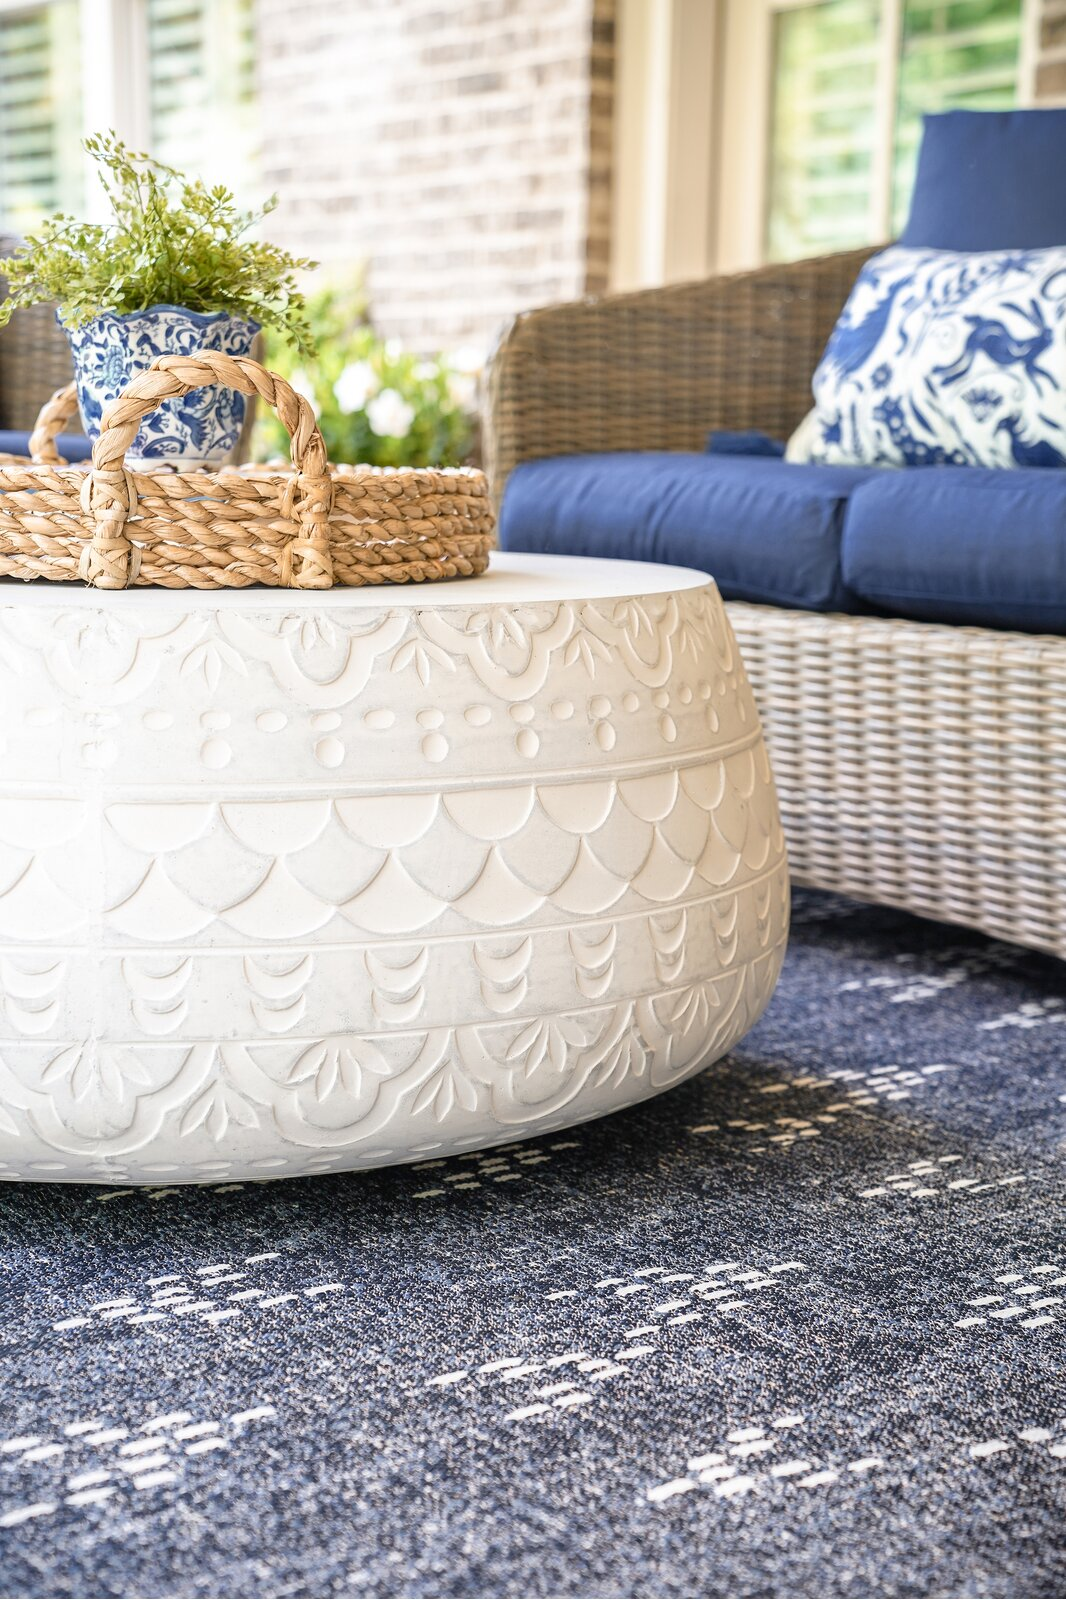 white-outdoor-coffee-table-patterned-concrete-textural-whitewashed-finish-hollow-interior-handcrafted-indoor-outdoor-furniture